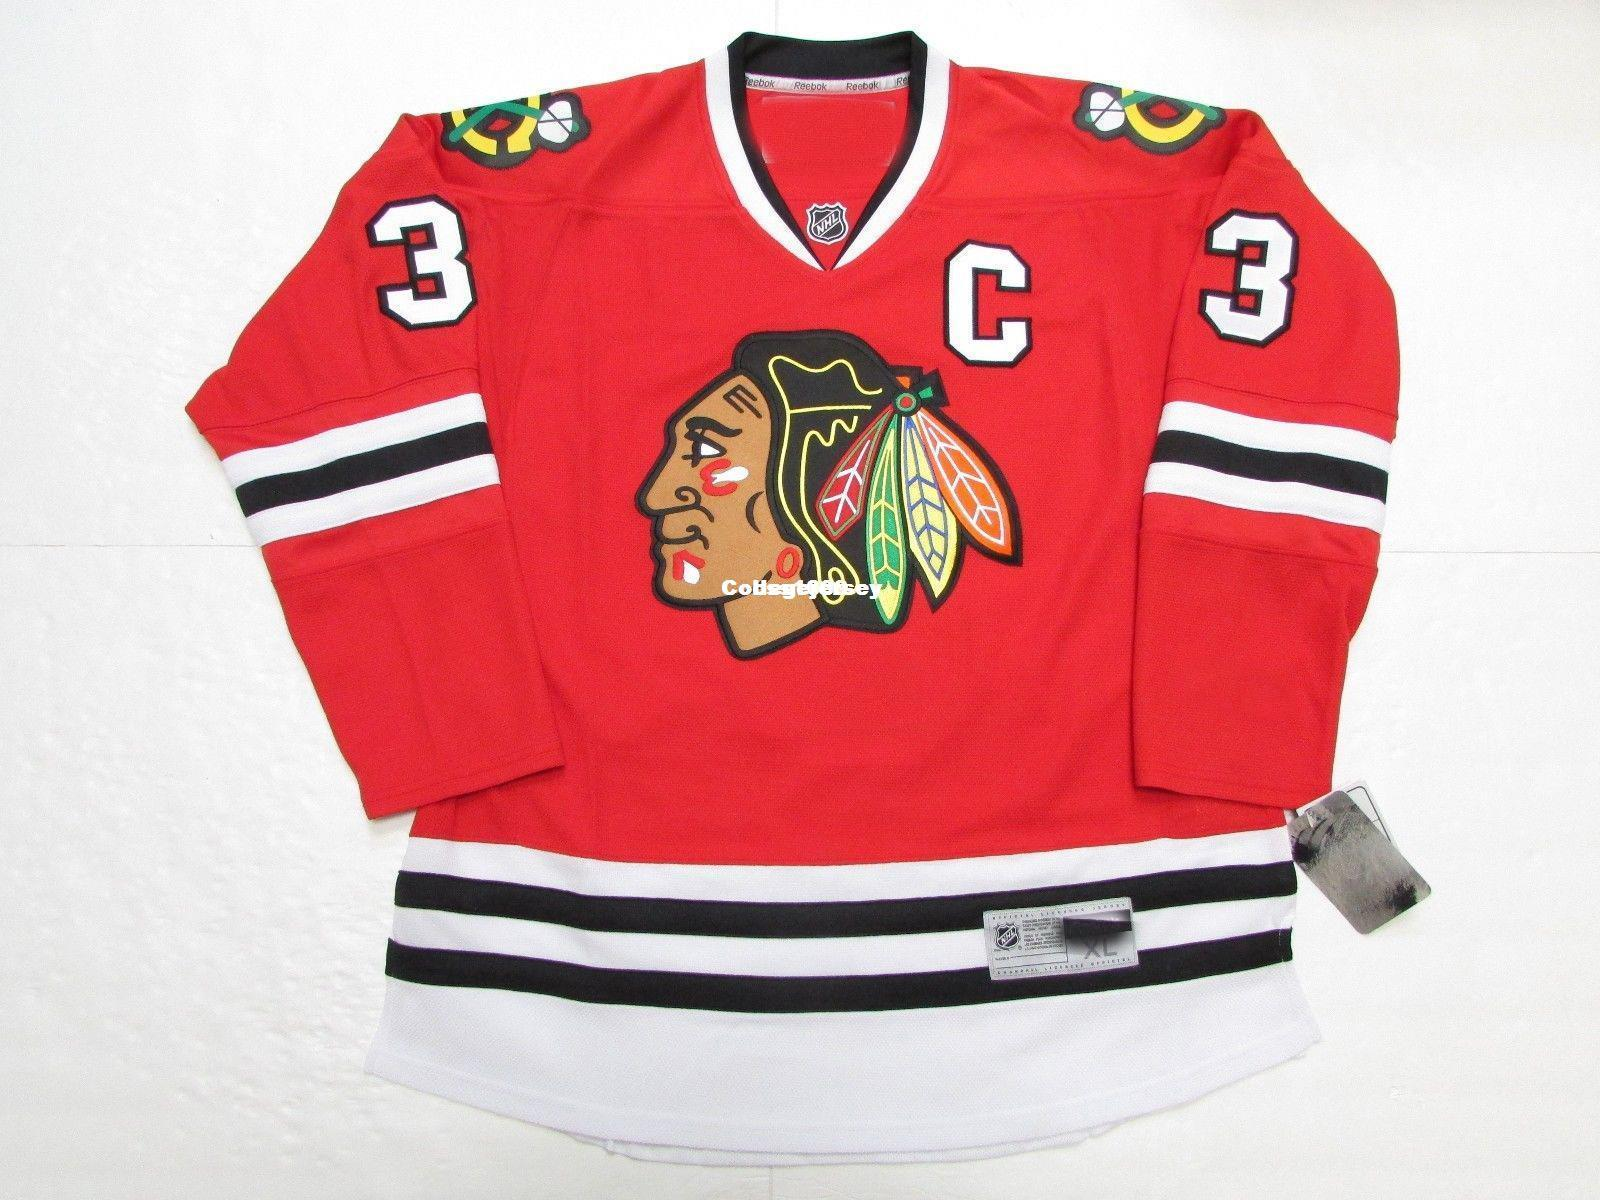 2018 Cheap Custom Keith Magnuson Chicago Blackhawks Home Premier 7185 Hockey  Jersey Stitch Add Any Number Any Name Mens Hockey Jersey Goalie Cut From ... 4645ae5c4